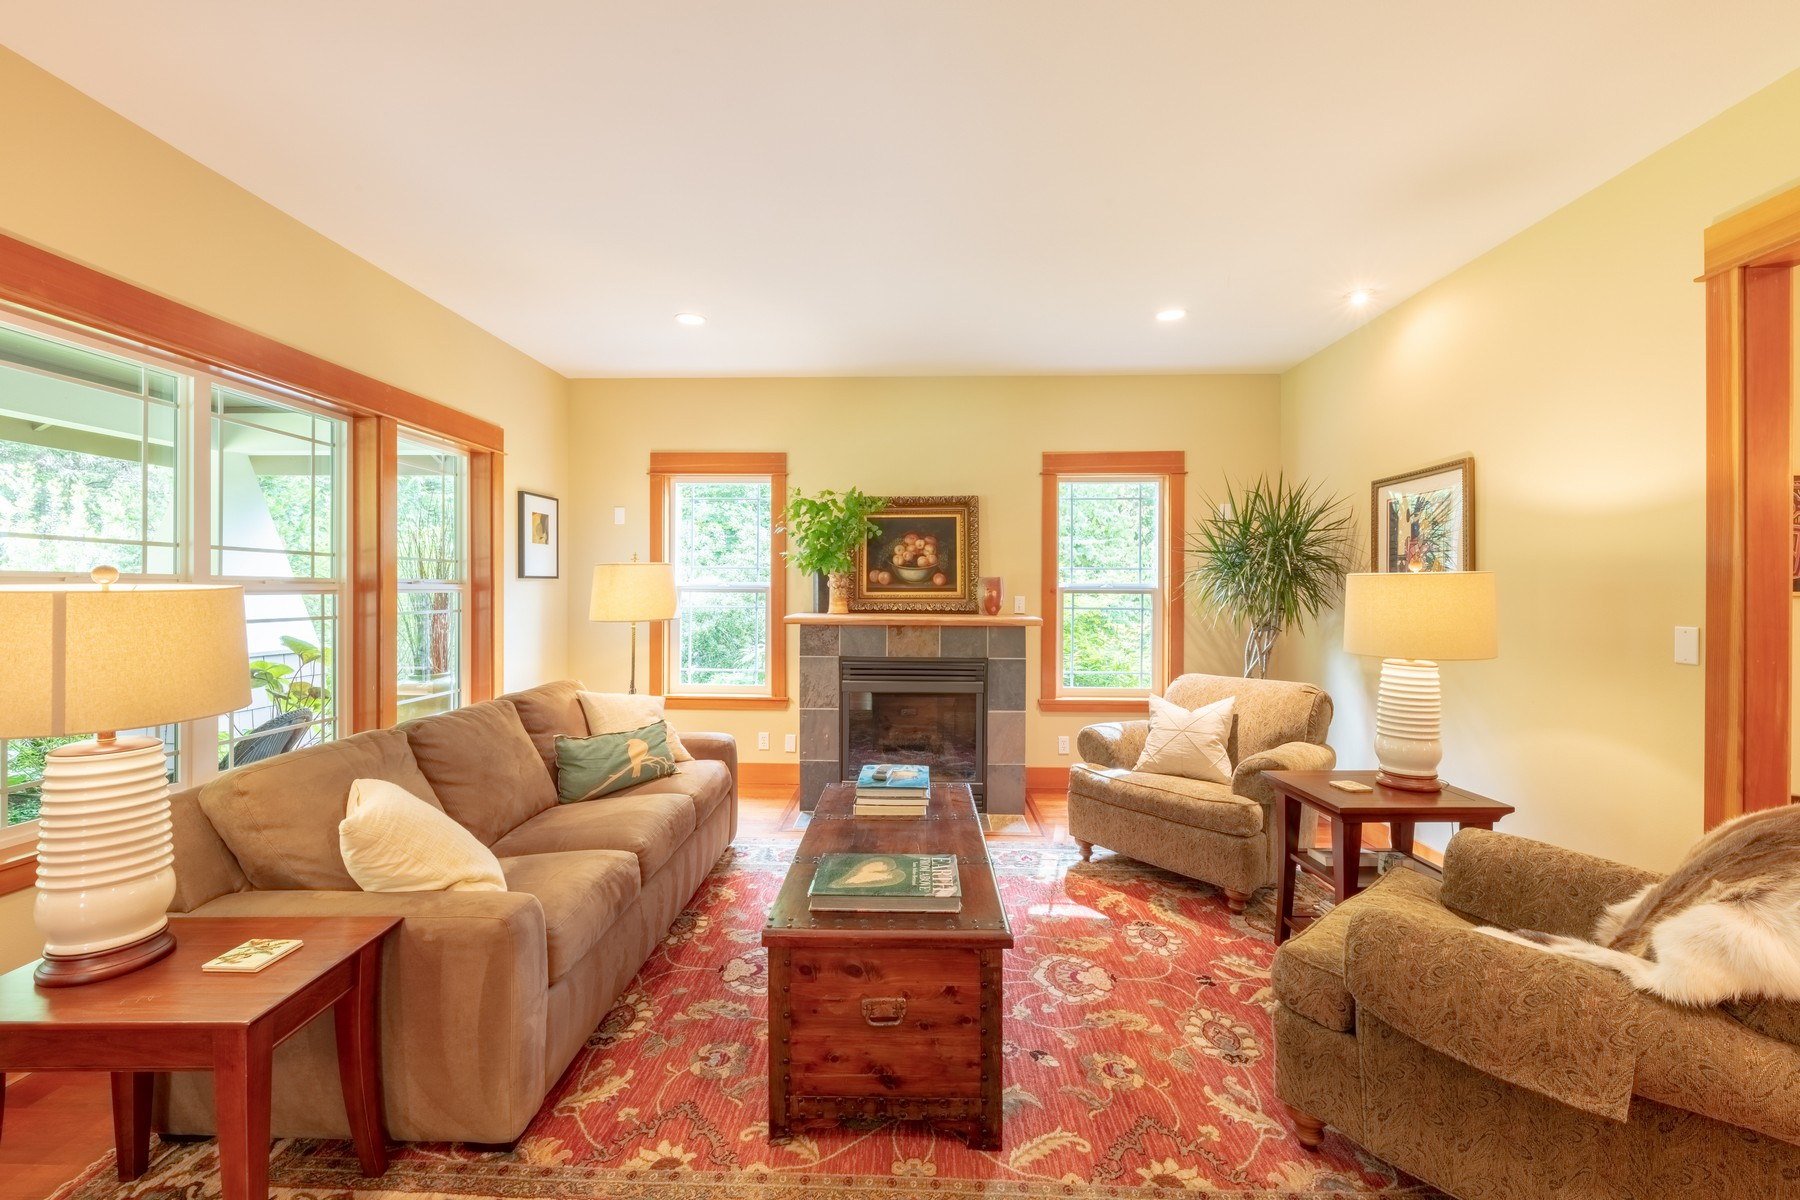 The  living  room  offers  a  gas  fireplace  and  large  windows  that  look  onto  the  gardens.